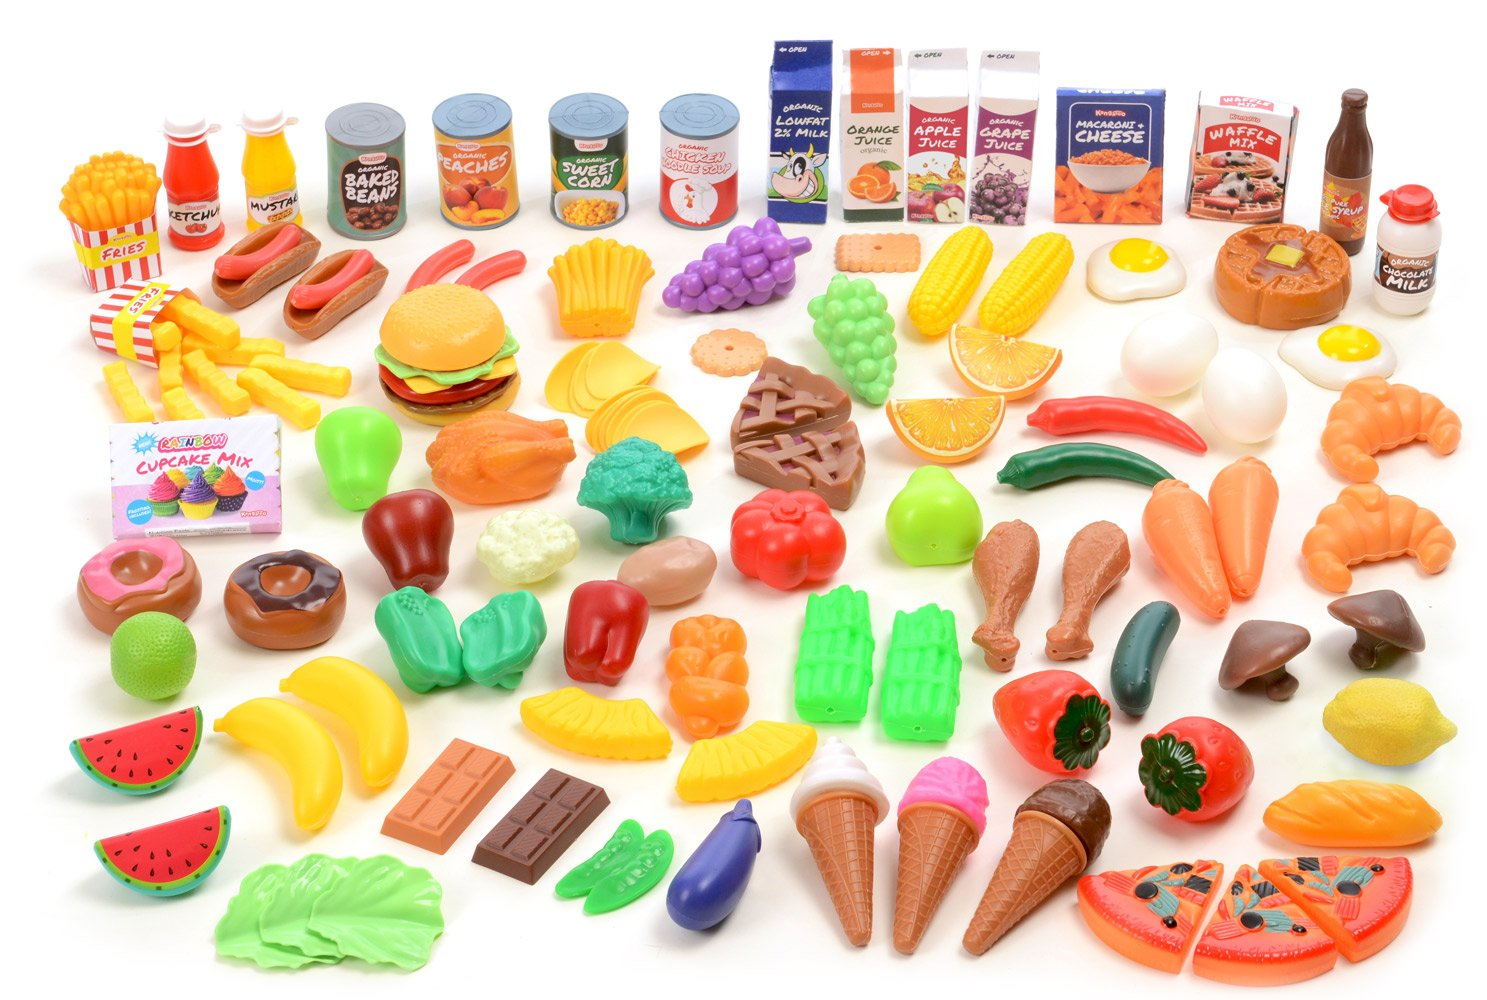 Toy Food For Toddlers : Fun play food set for kids kitchen cooking kid toy pretend